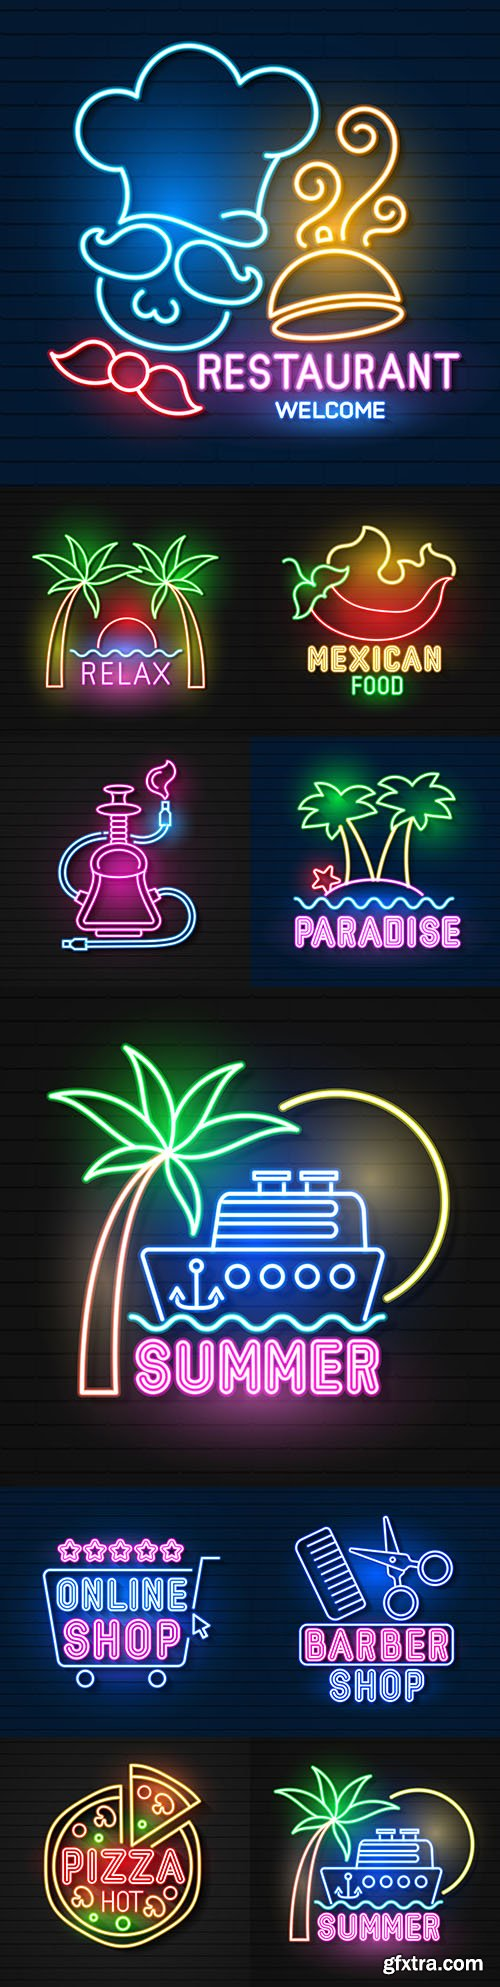 Neon signage and logo vector for your design